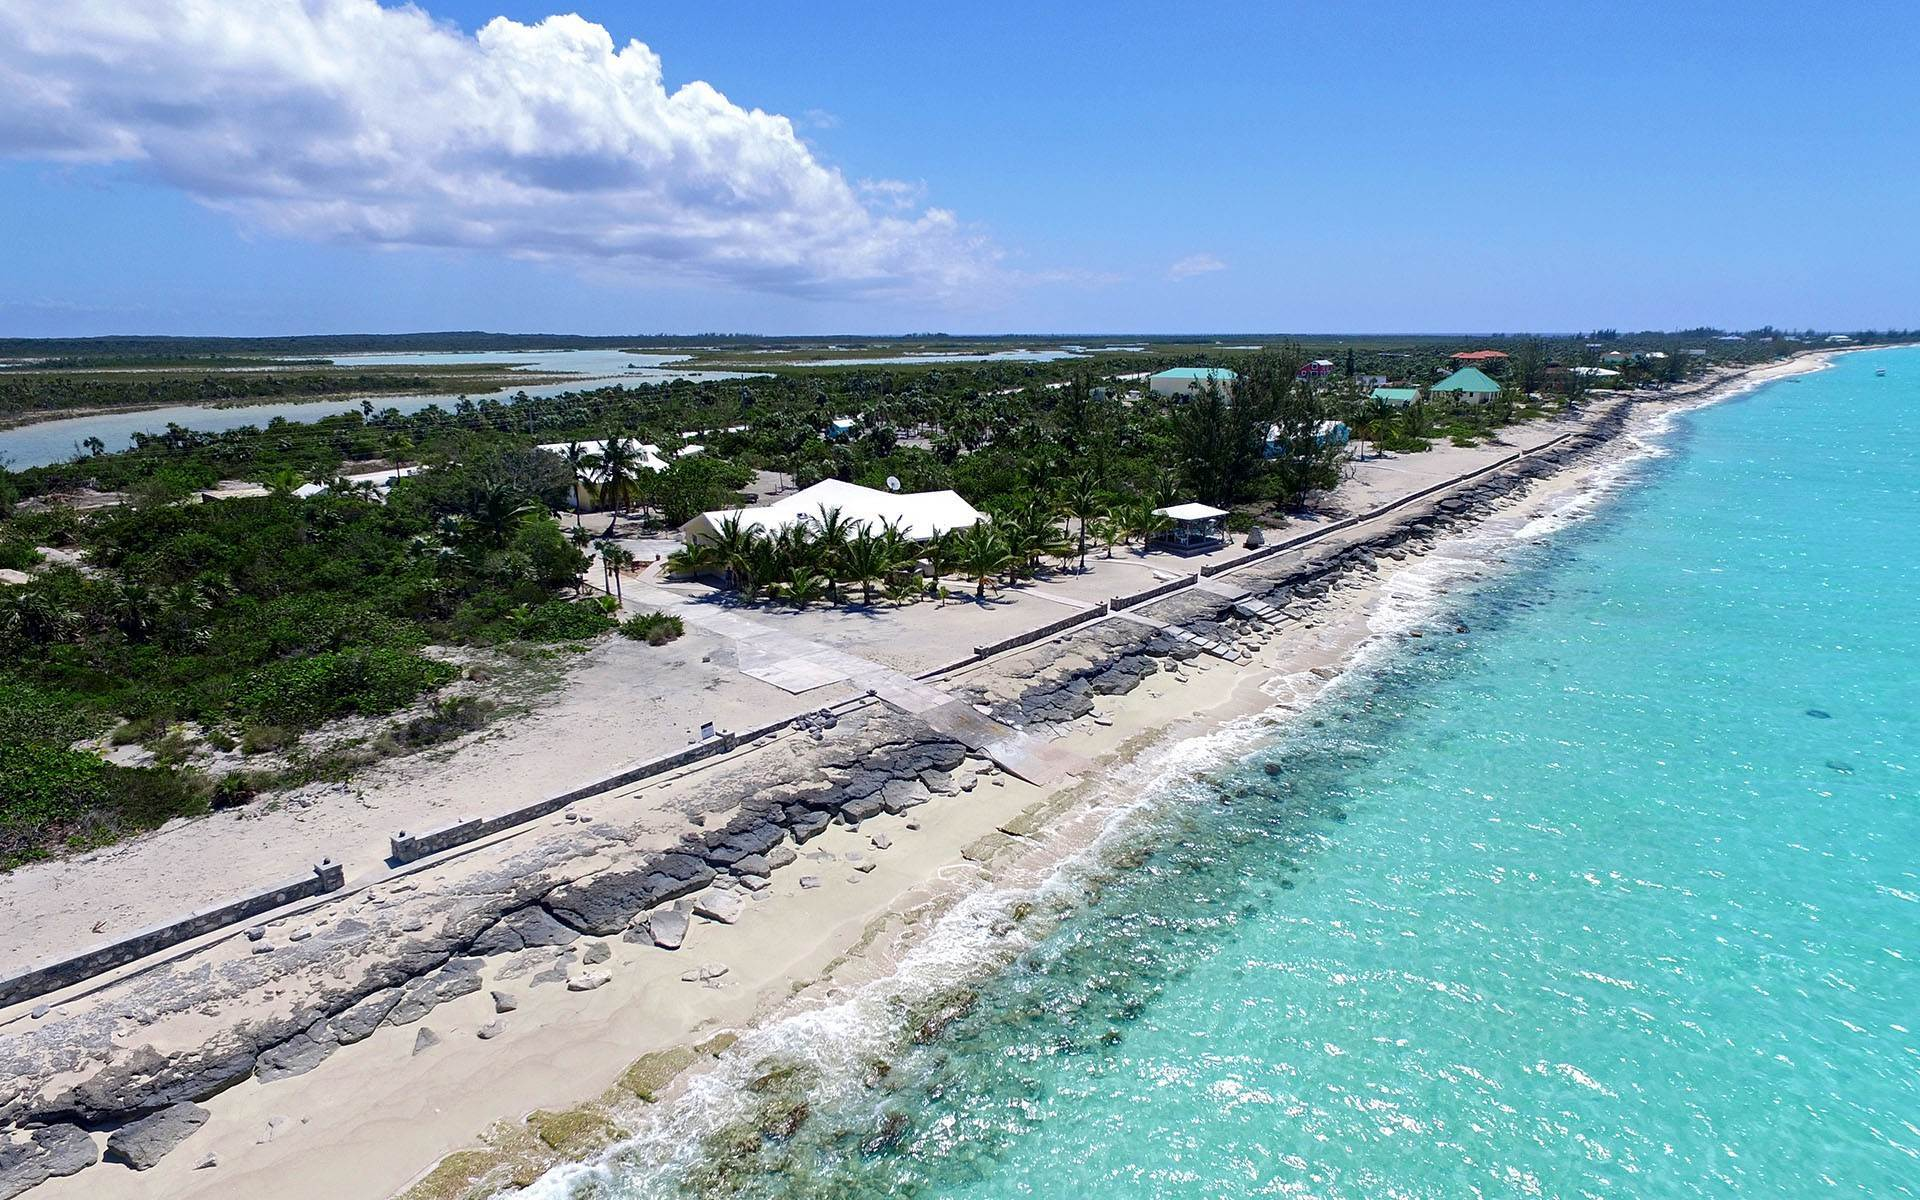 Single Family Homes for Sale at Hawks Nest Cat Island Beachfront Home - MLS 36353 Hawks Nest, Cat Island, Bahamas